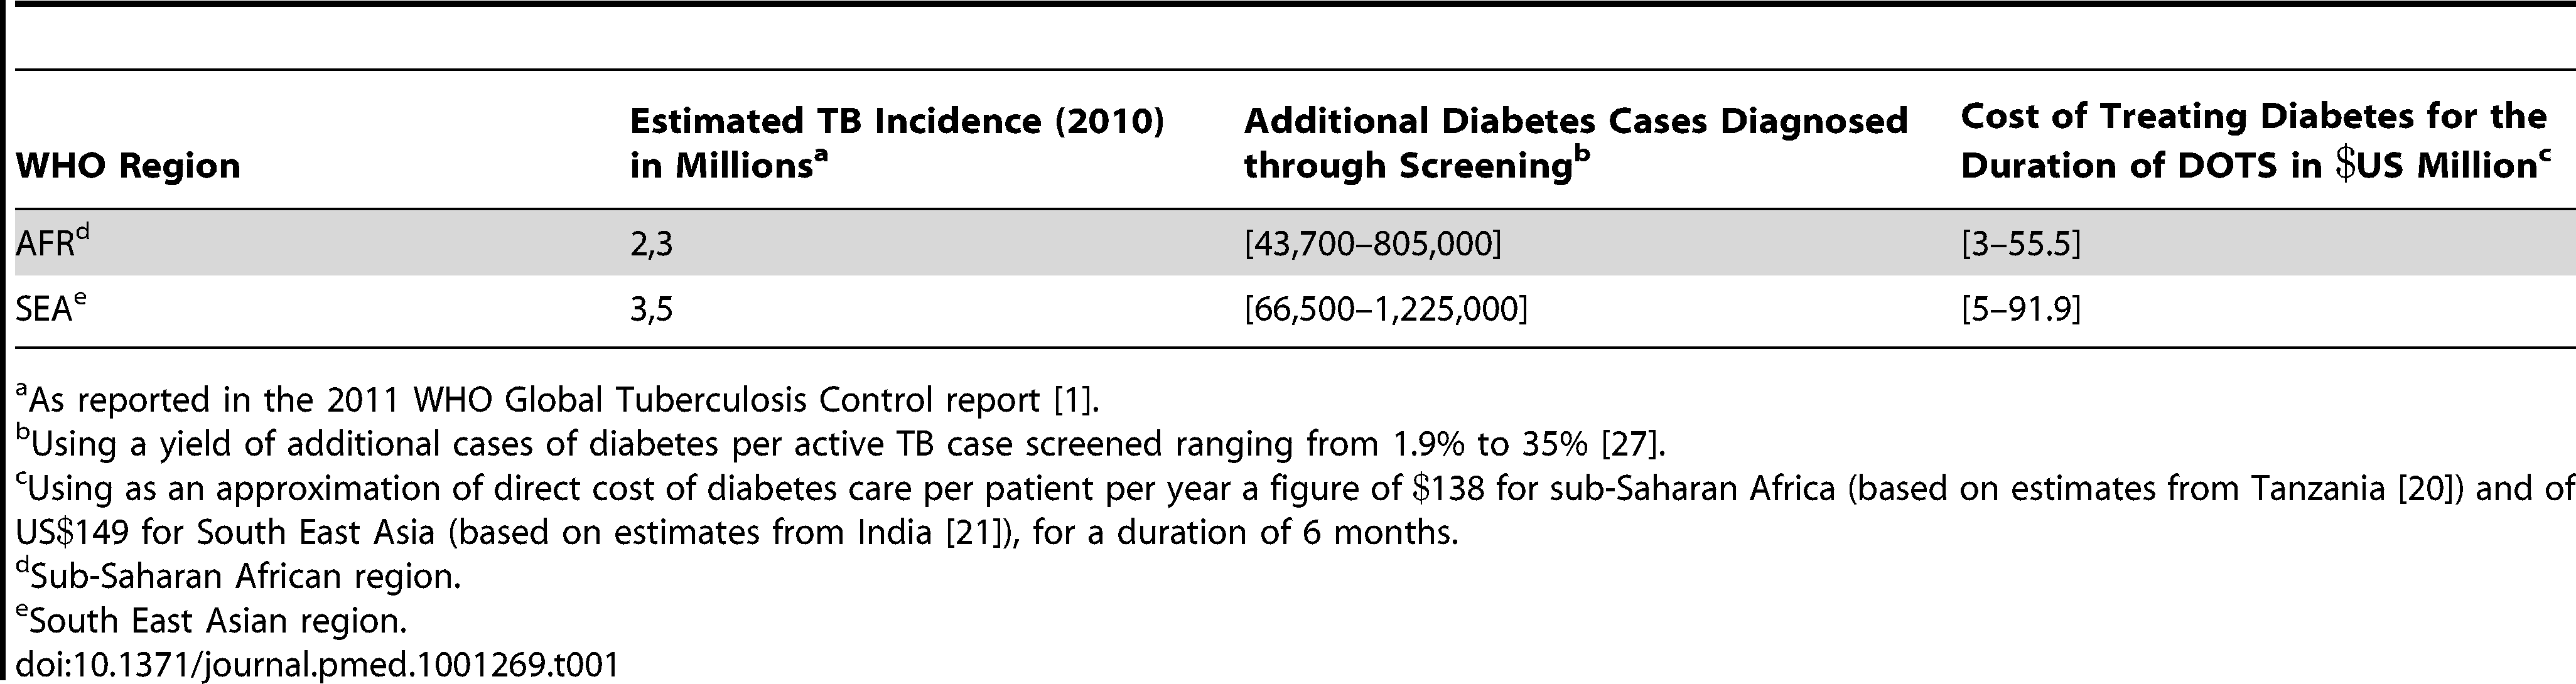 Additional funding required for diabetes care in TB patients using estimated TB incidence in Africa and South East Asia.